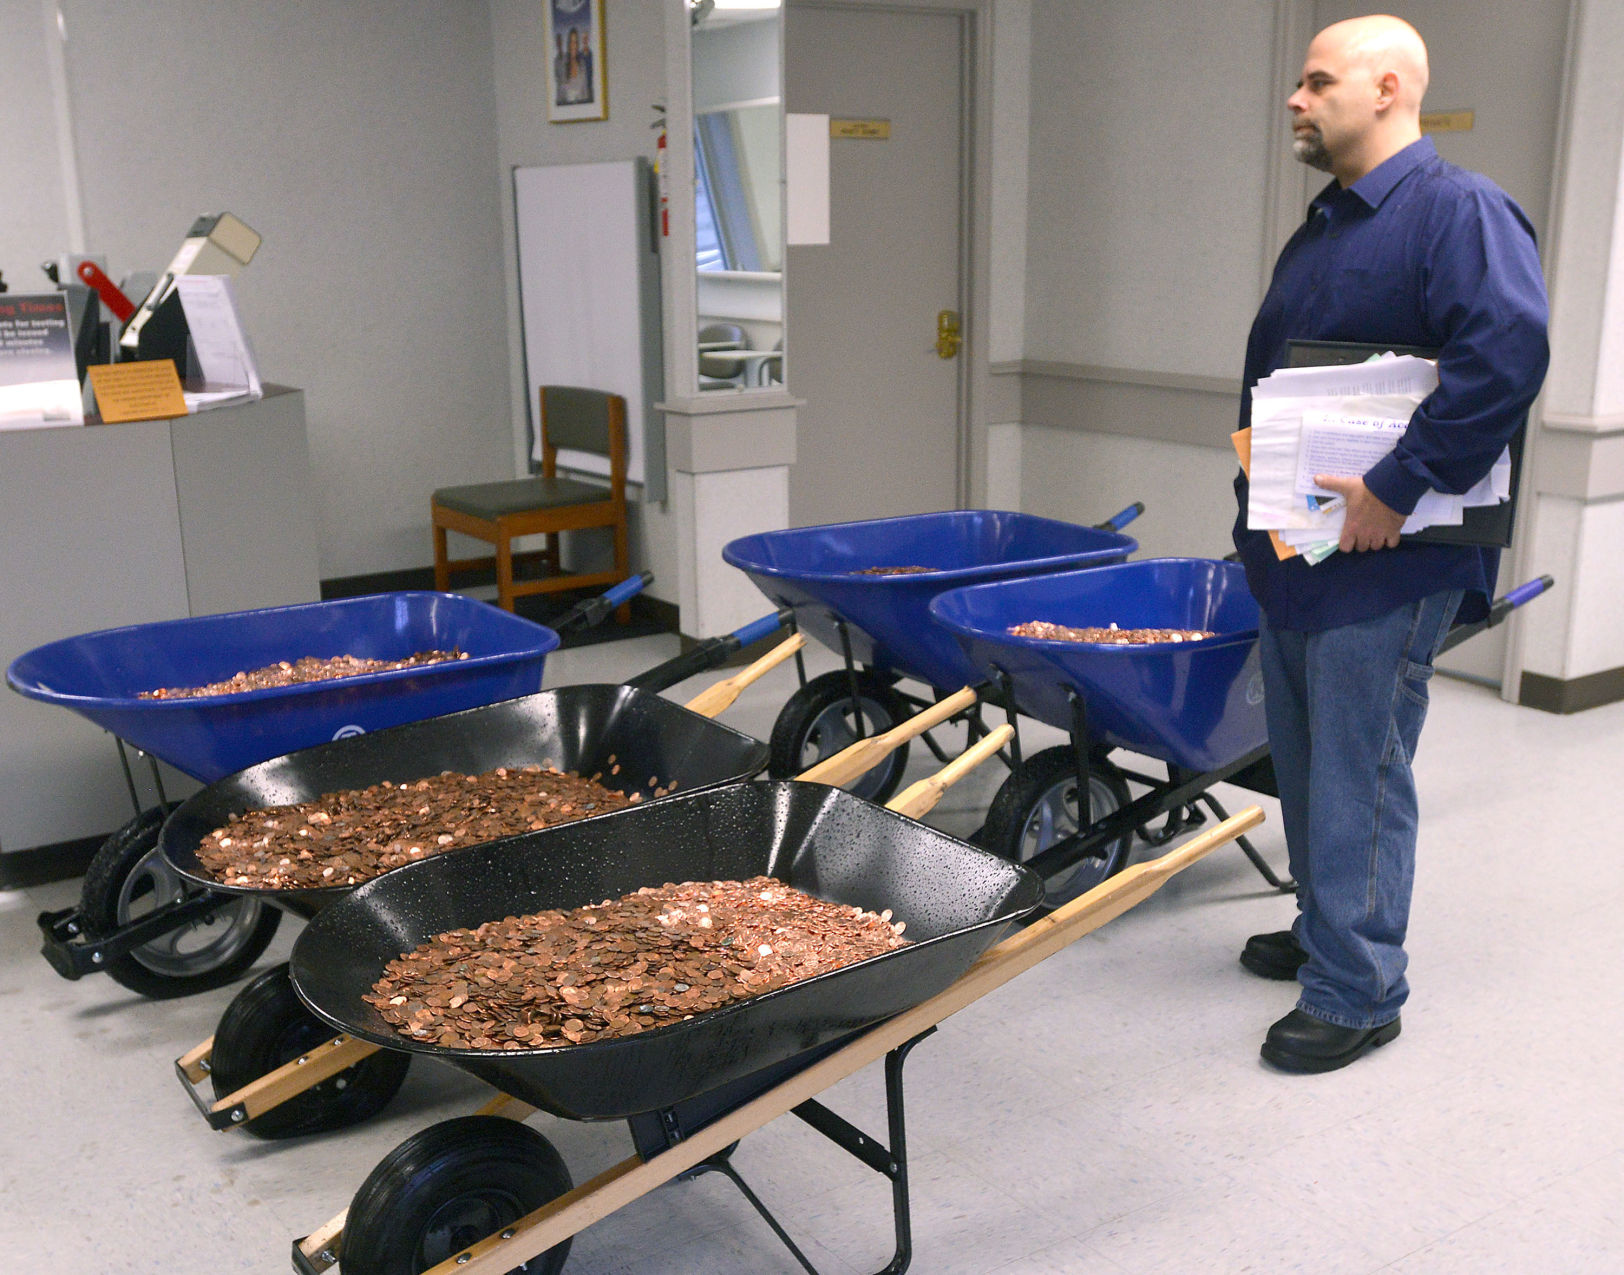 Virginia Man Spends $1,000 To Deliver 300,000 Pennies To Lebanon DMV